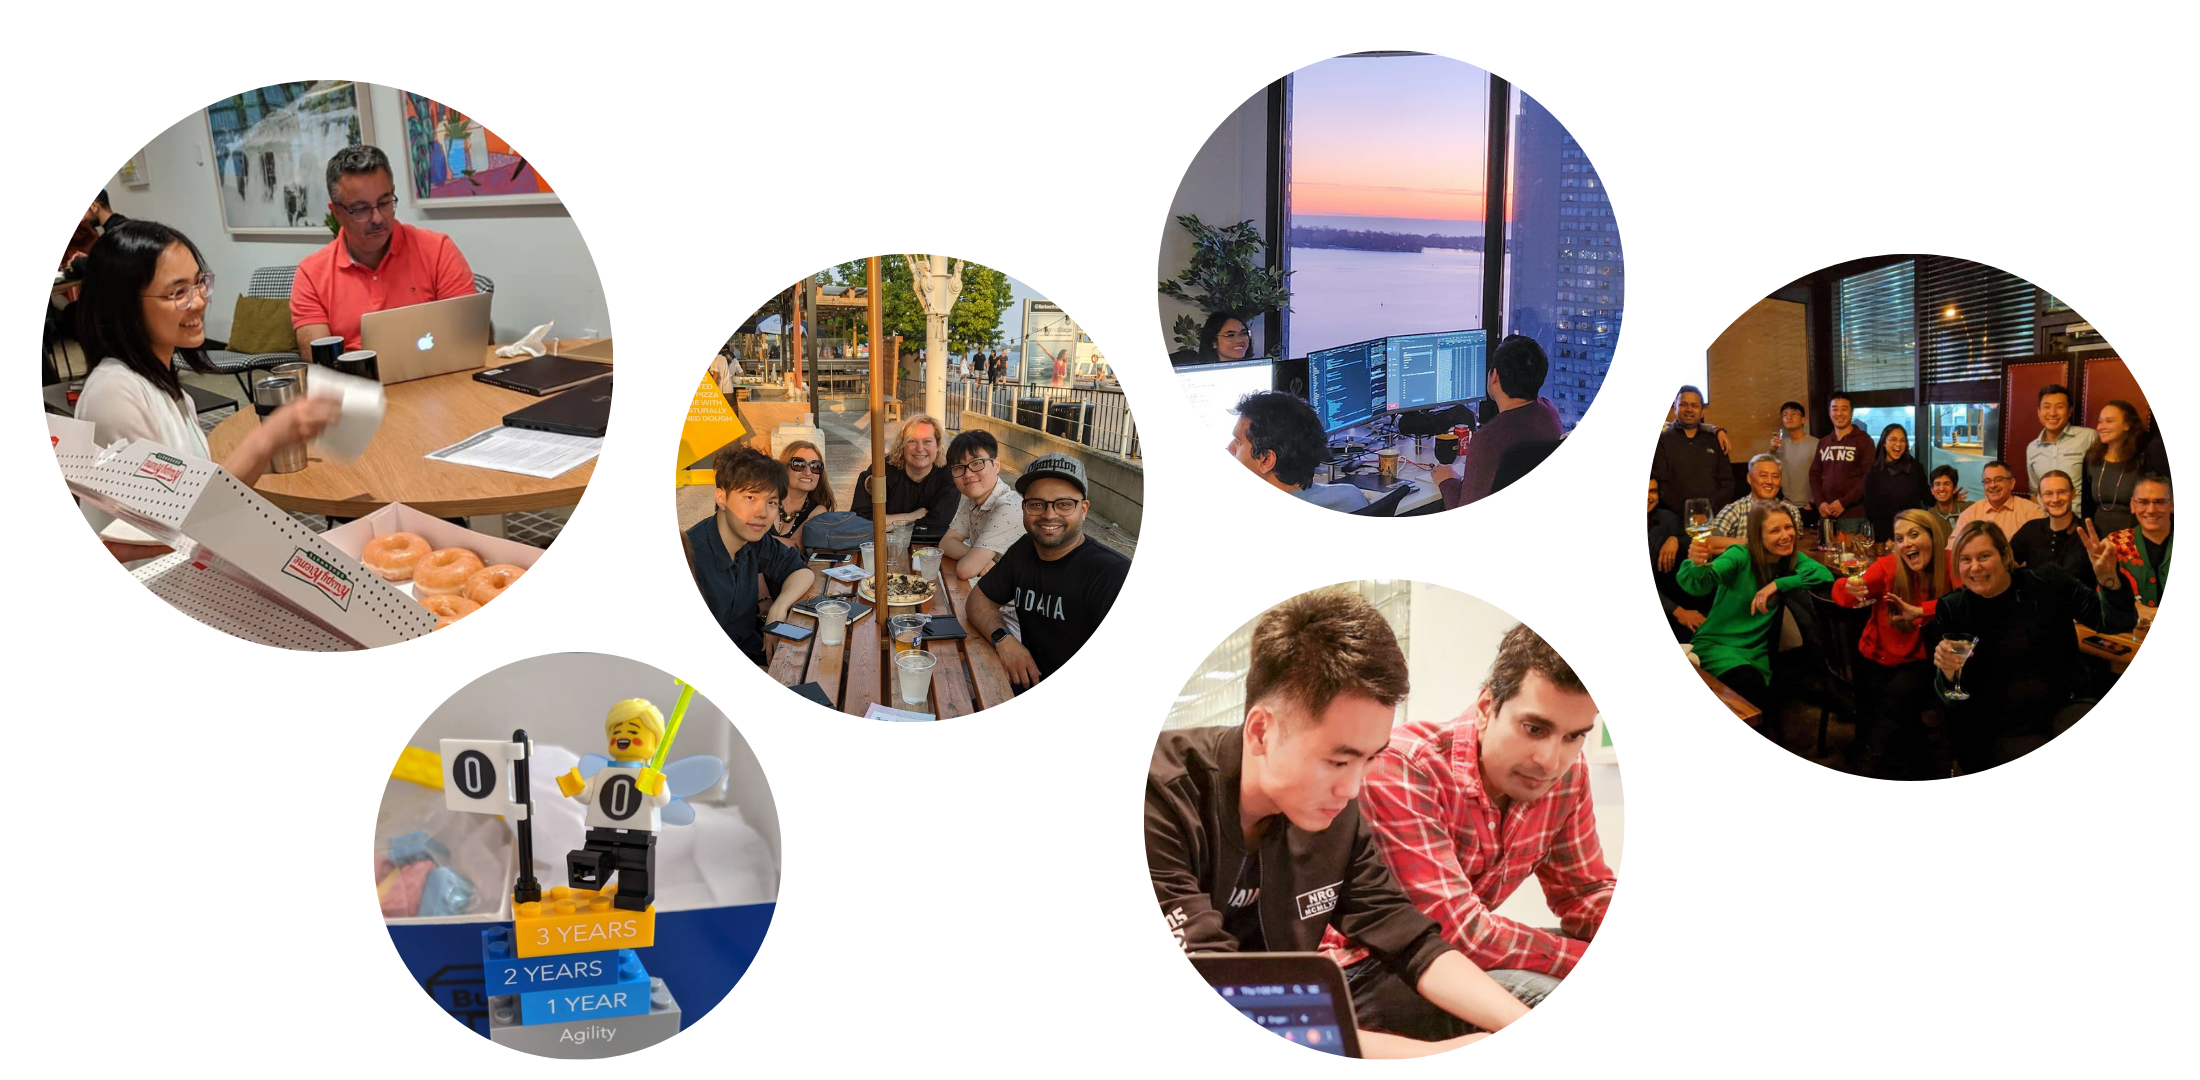 A collage of images of life at odaia: the team getting together for events, working collaboratively, and having fun